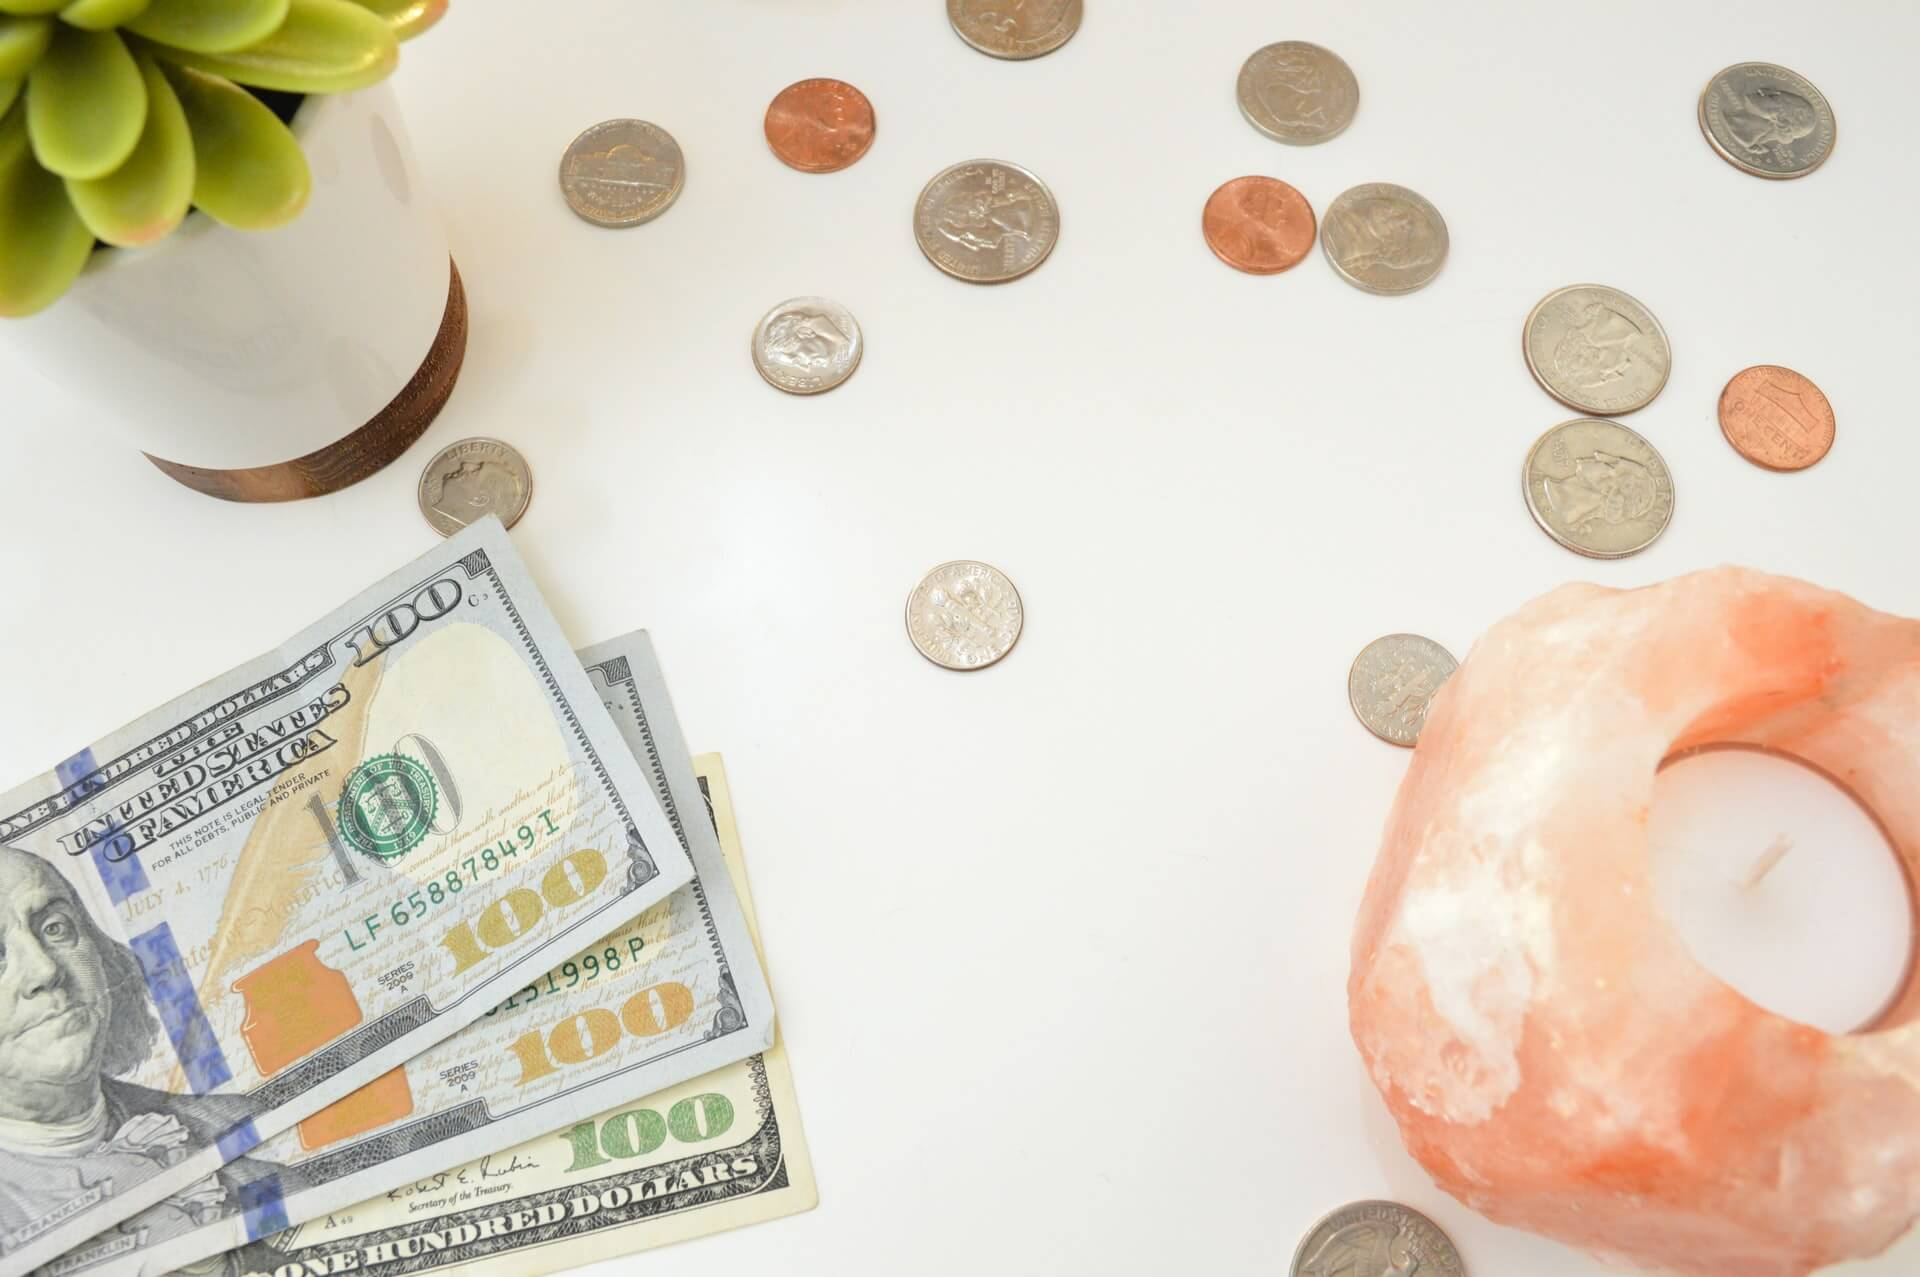 Cash and coins on a table upselling